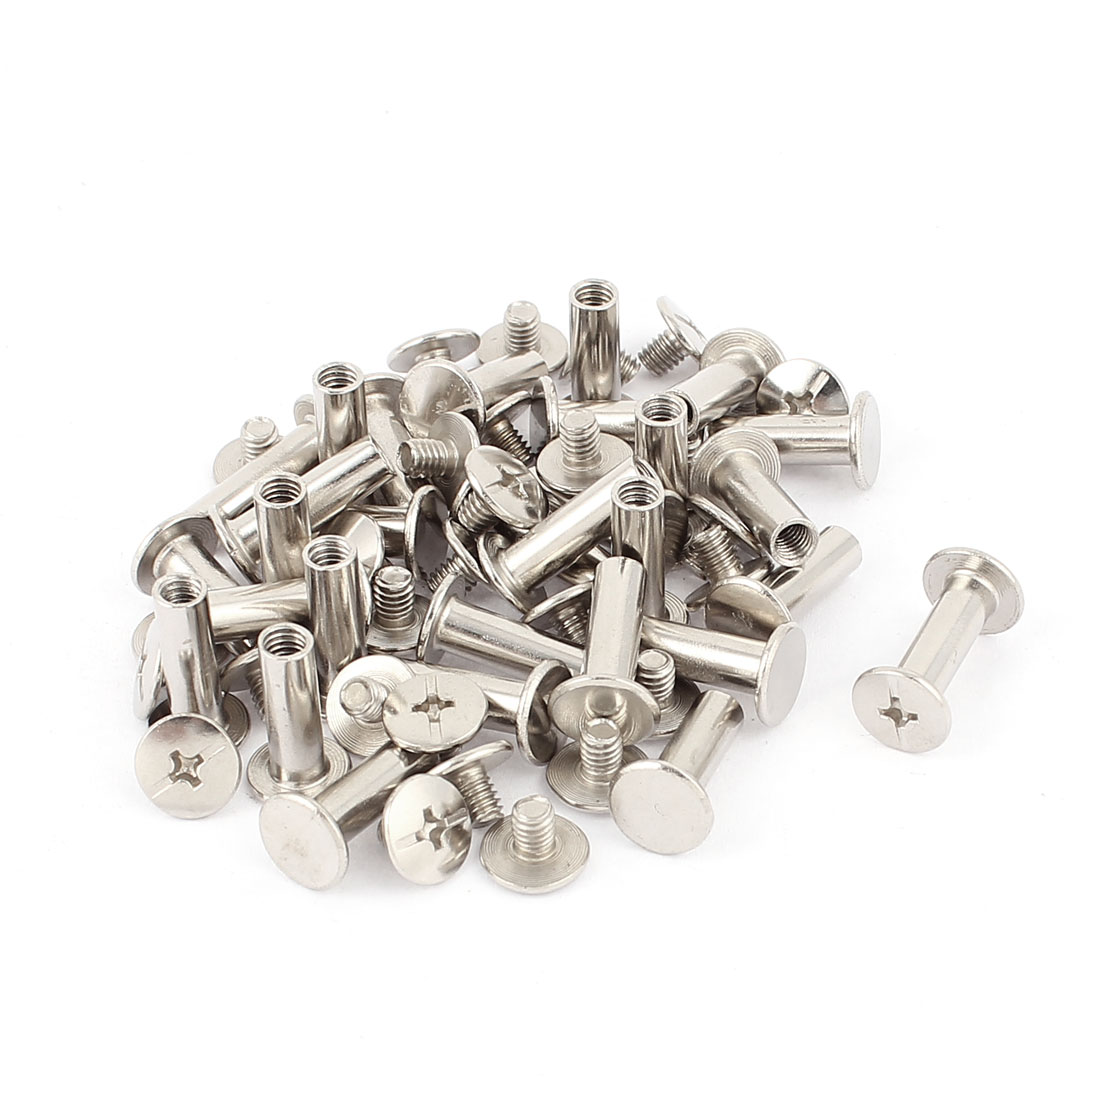 30Pcs M5x15mm Nickel Plated Binding Screw Post for Scrapbook Photo Albums